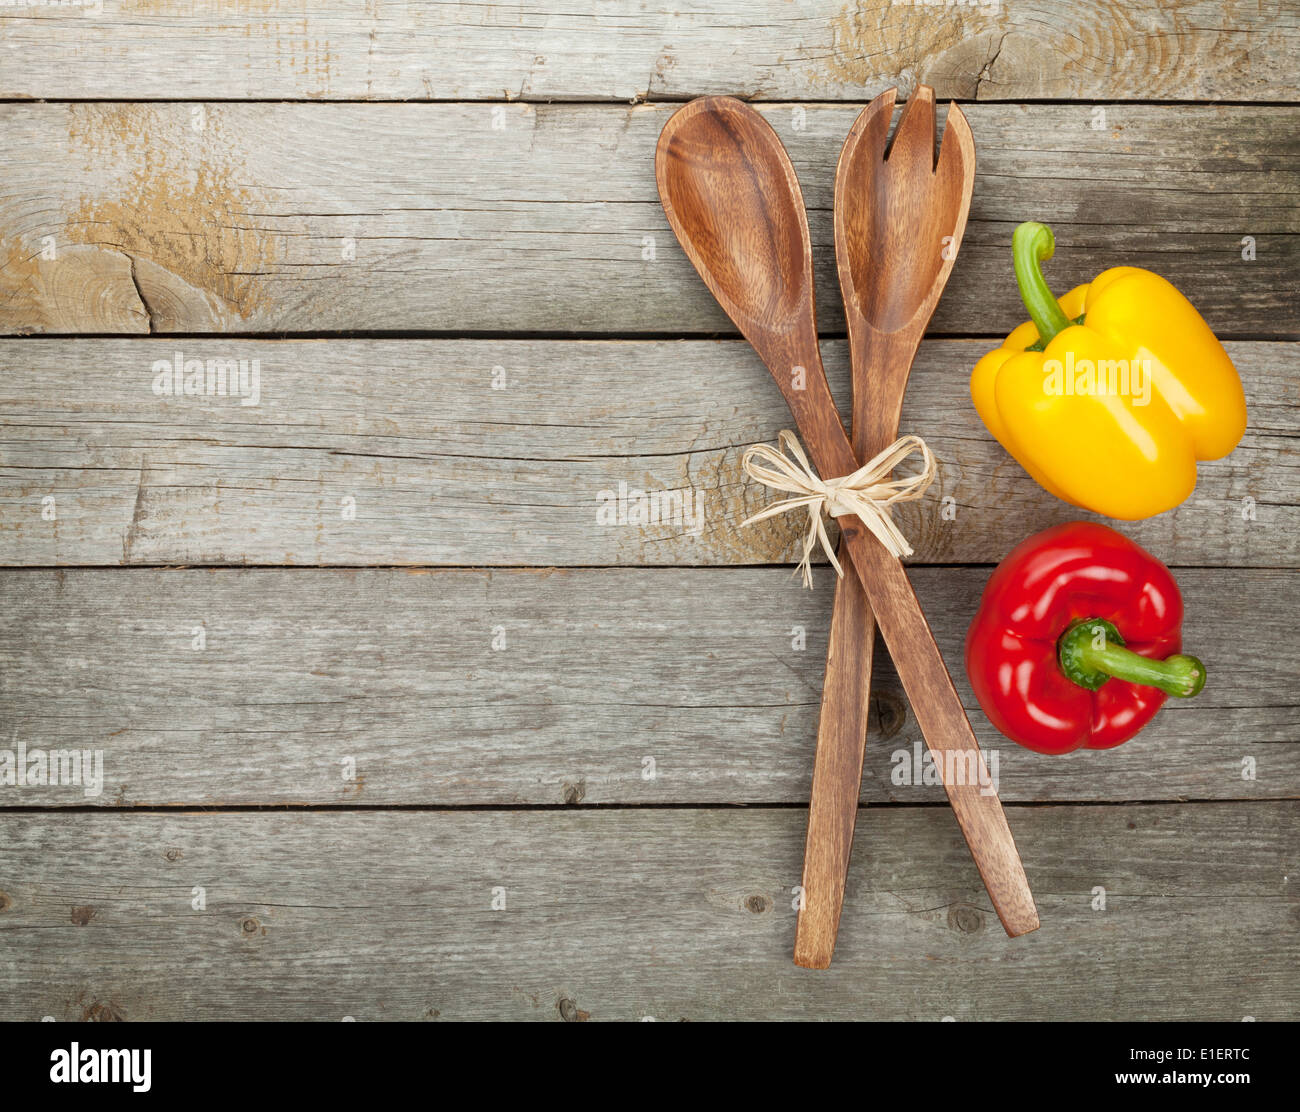 Kitchen Utensils Background: Colorful Bell Peppers And Kitchen Utensils Over Wooden